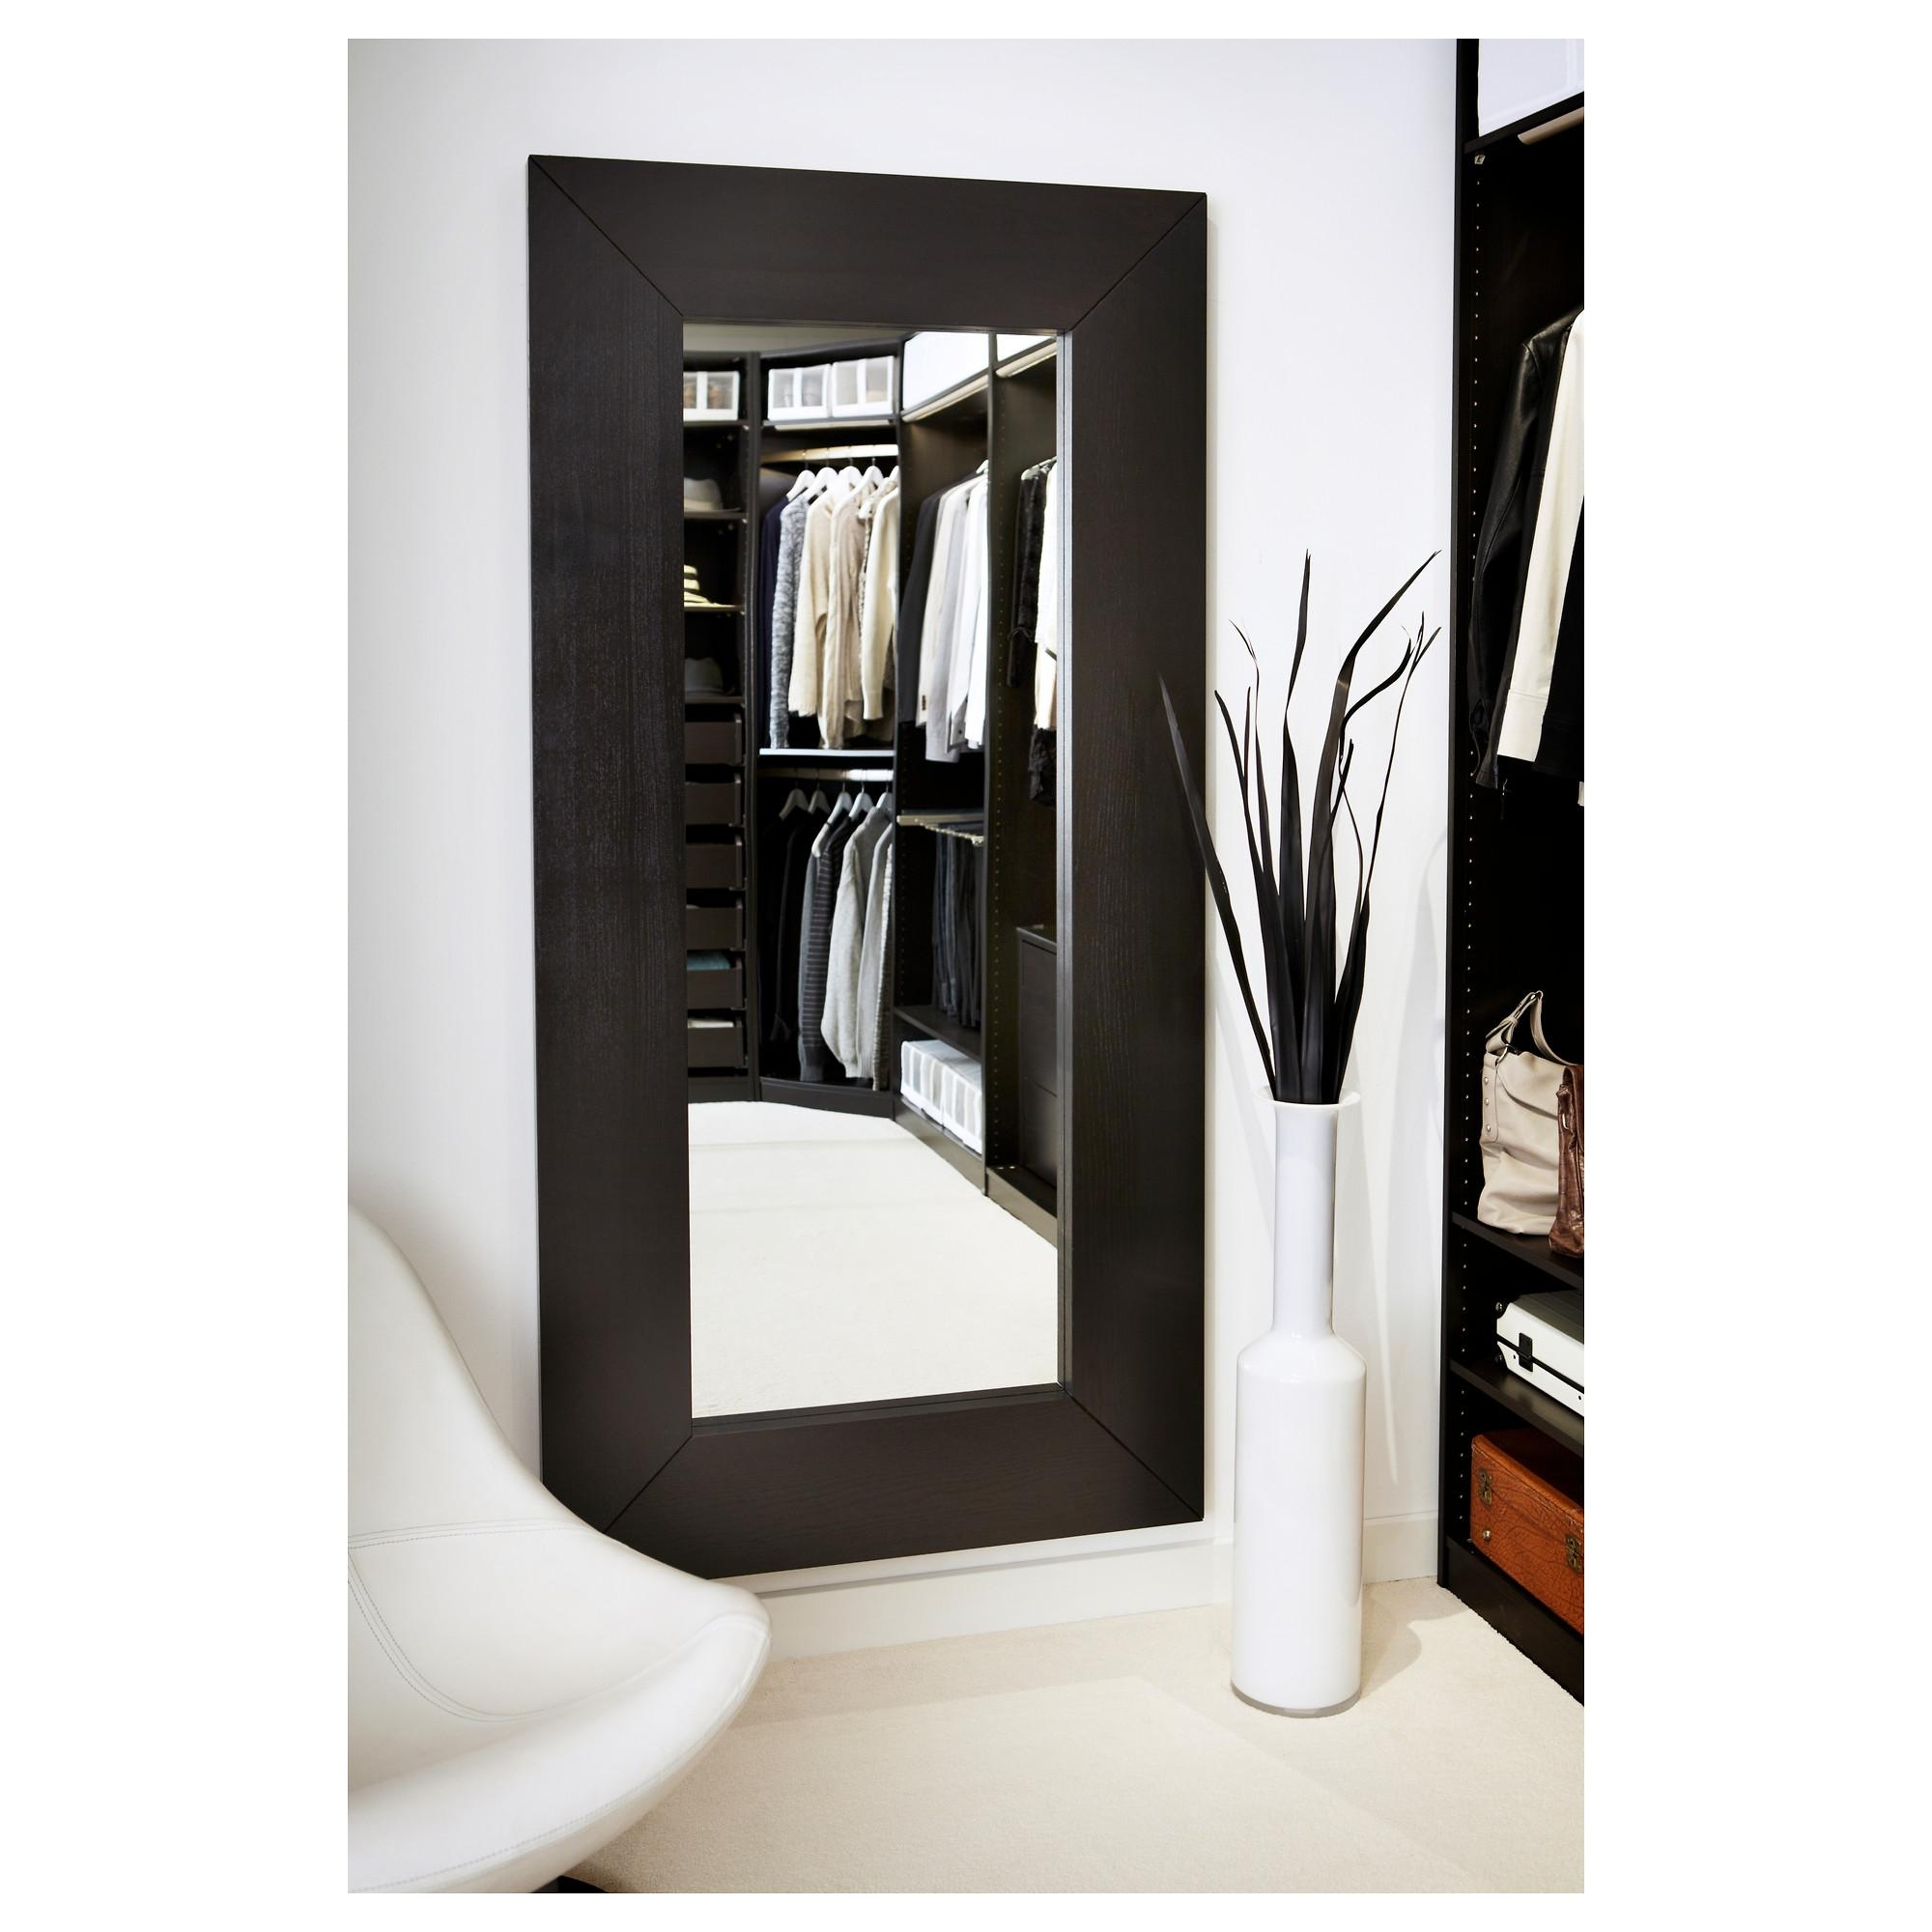 Mirrors: Outstanding Glass Framed Mirrors Sale Cheap Wall Mirrors With Regard To Black Wall Mirrors For Sale (Image 14 of 20)